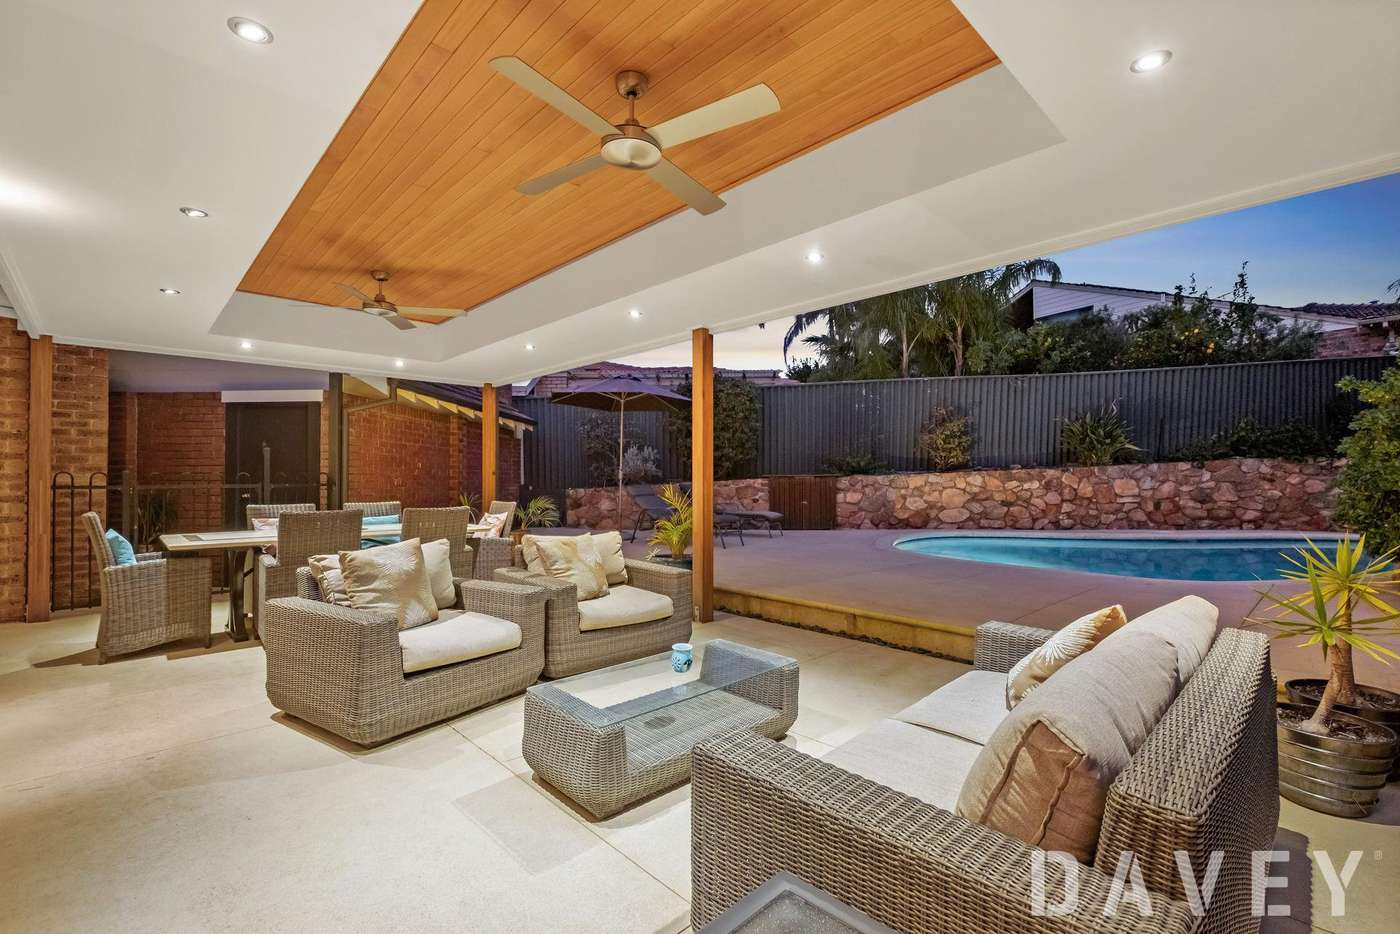 Main view of Homely house listing, 6 Macbean Place, Duncraig WA 6023